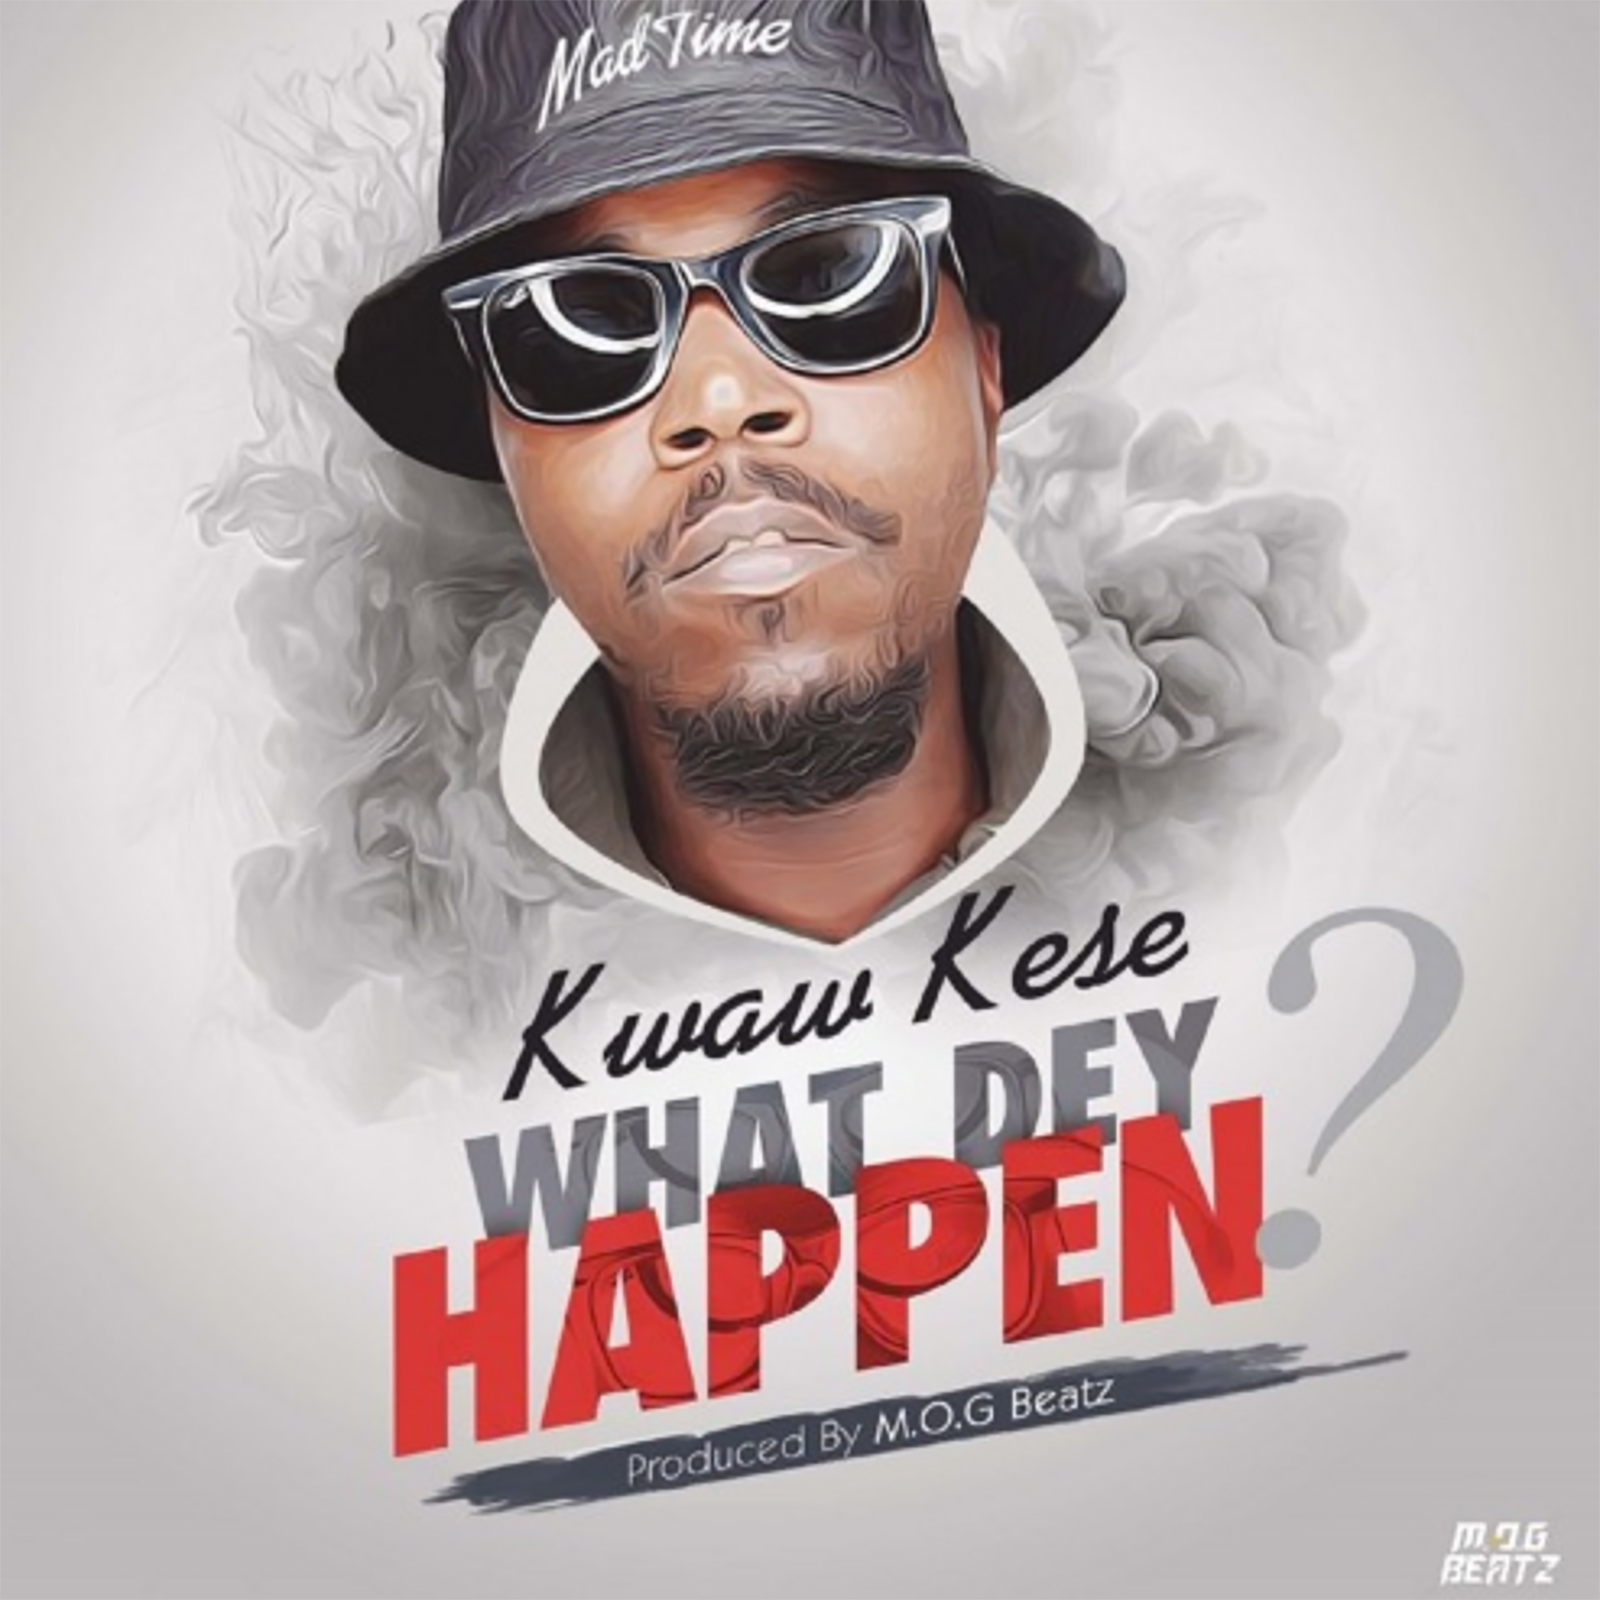 What Dey Happen by Kwaw Kese